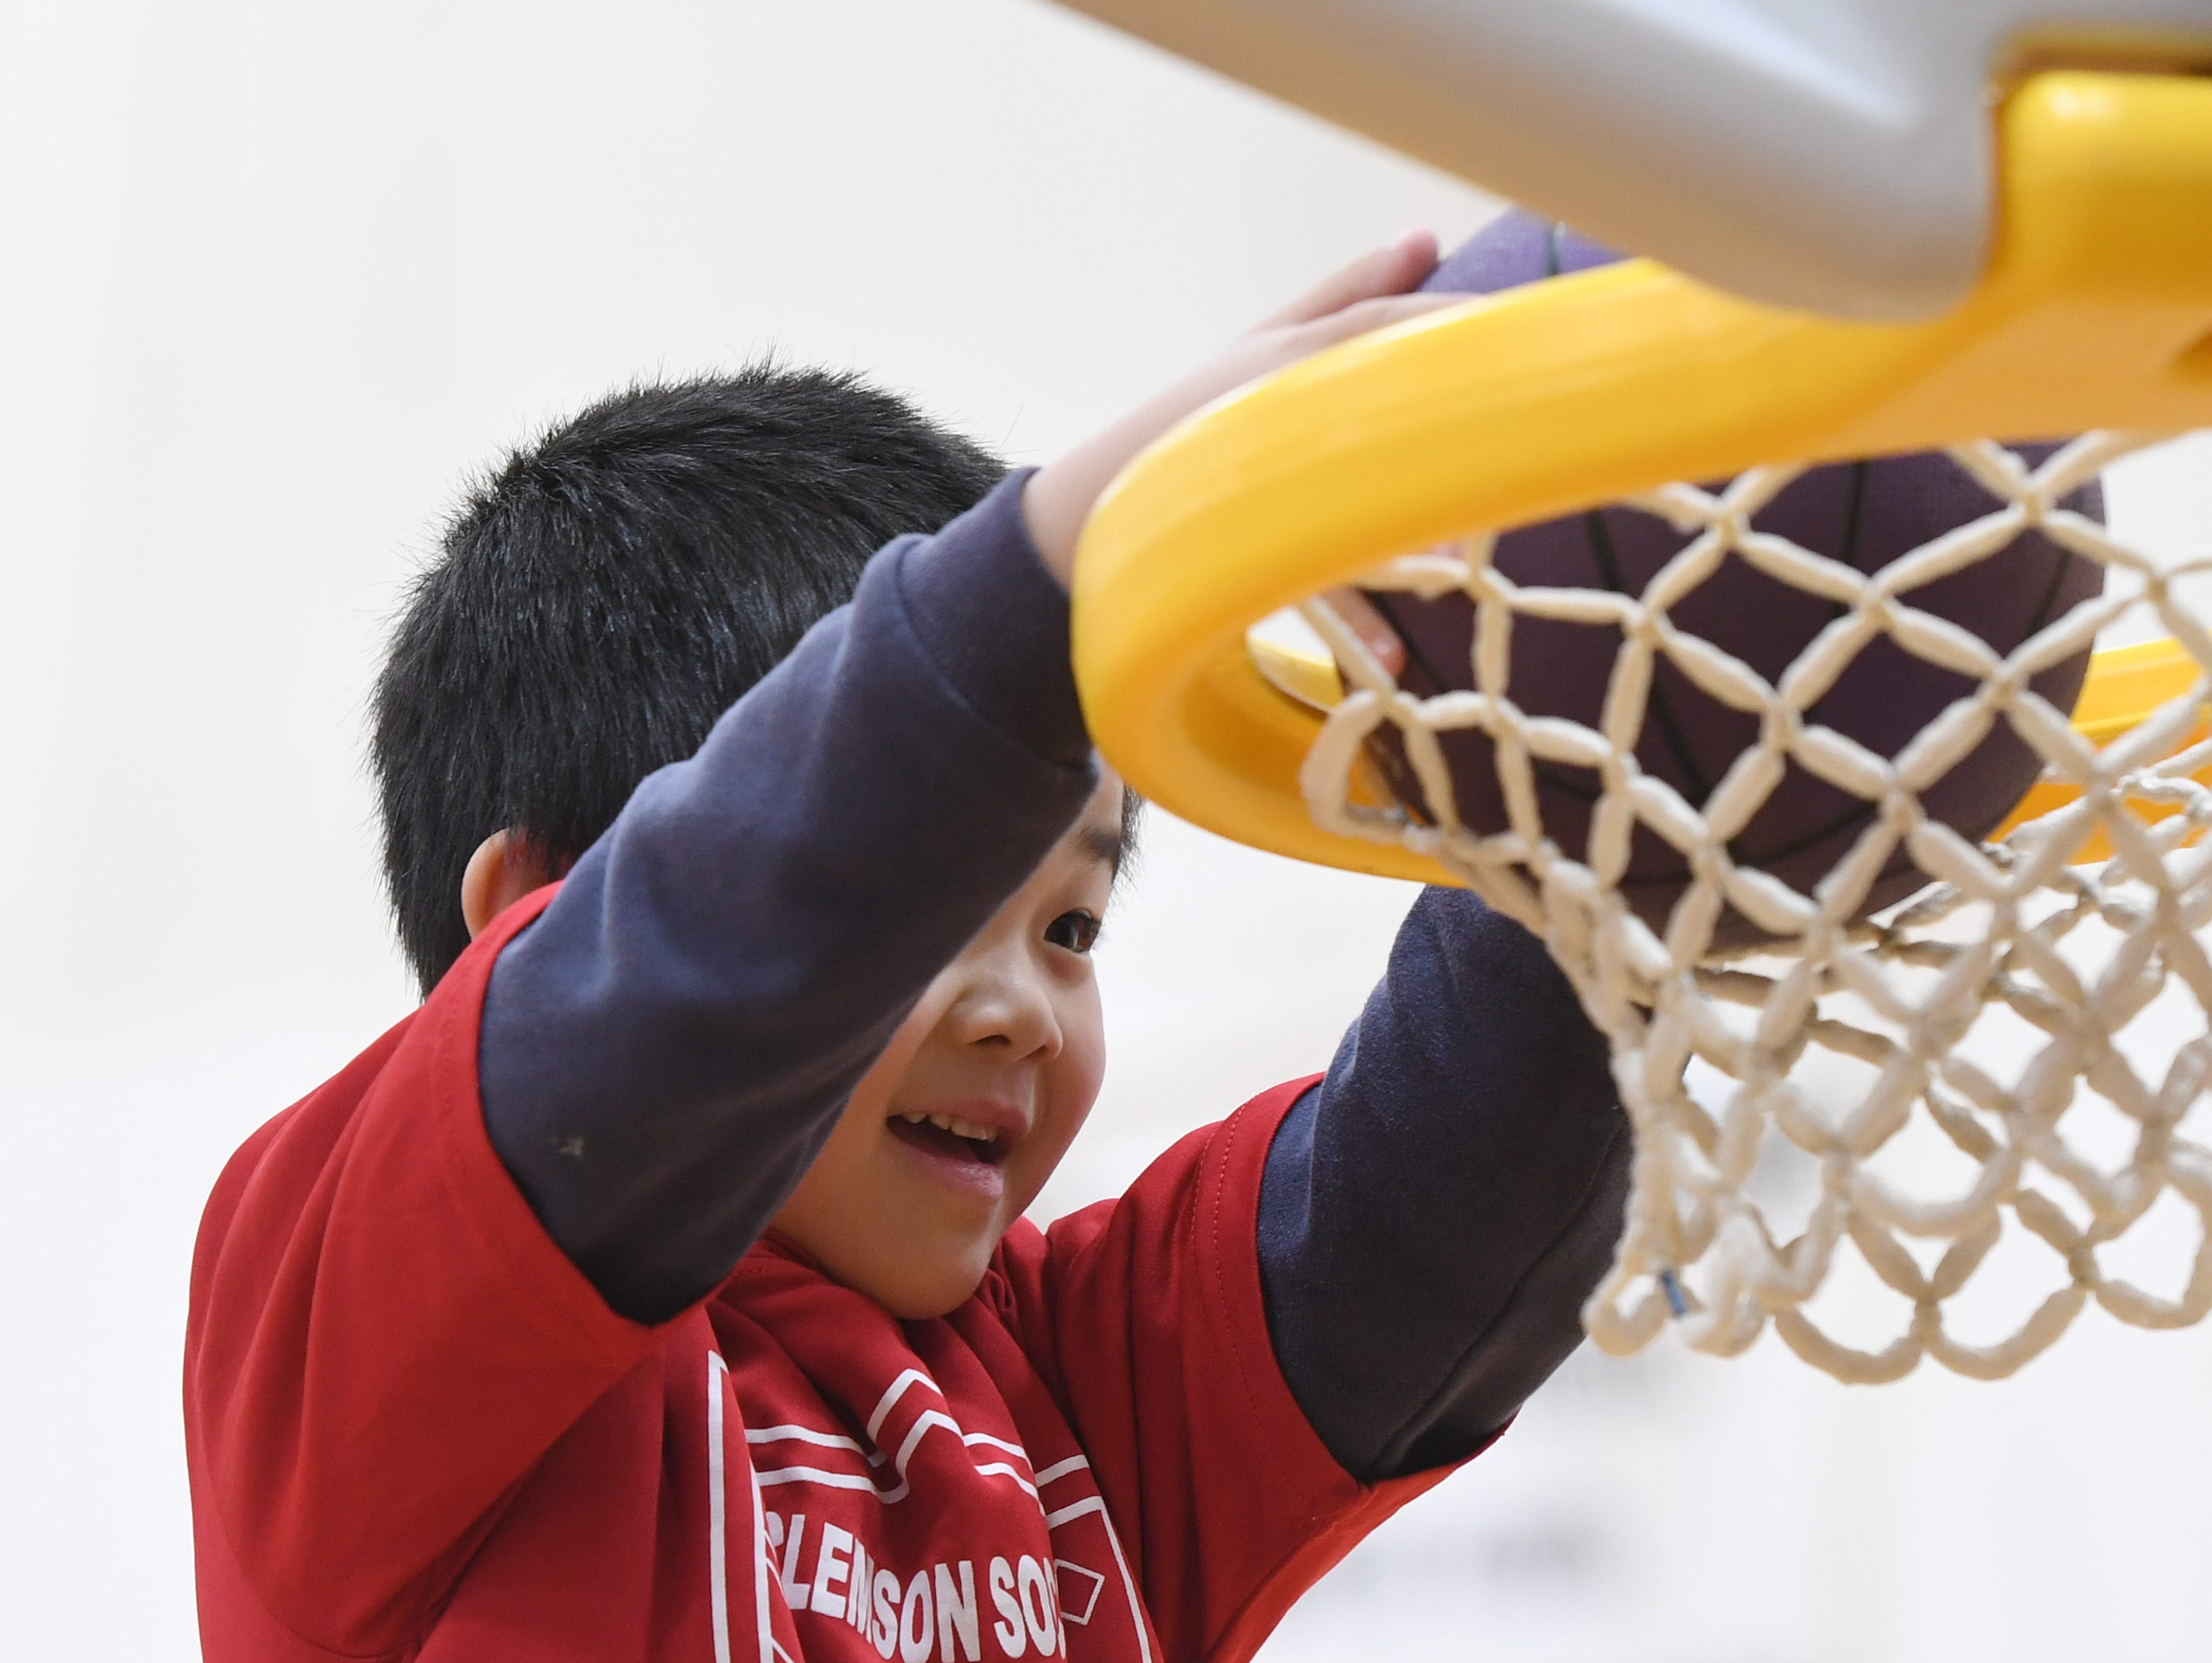 Paul Chang, 4, dunks the ball during the Smart Start Basketball program at Central-Clemson Recreational Center Saturday, Feb. 2, 2019.